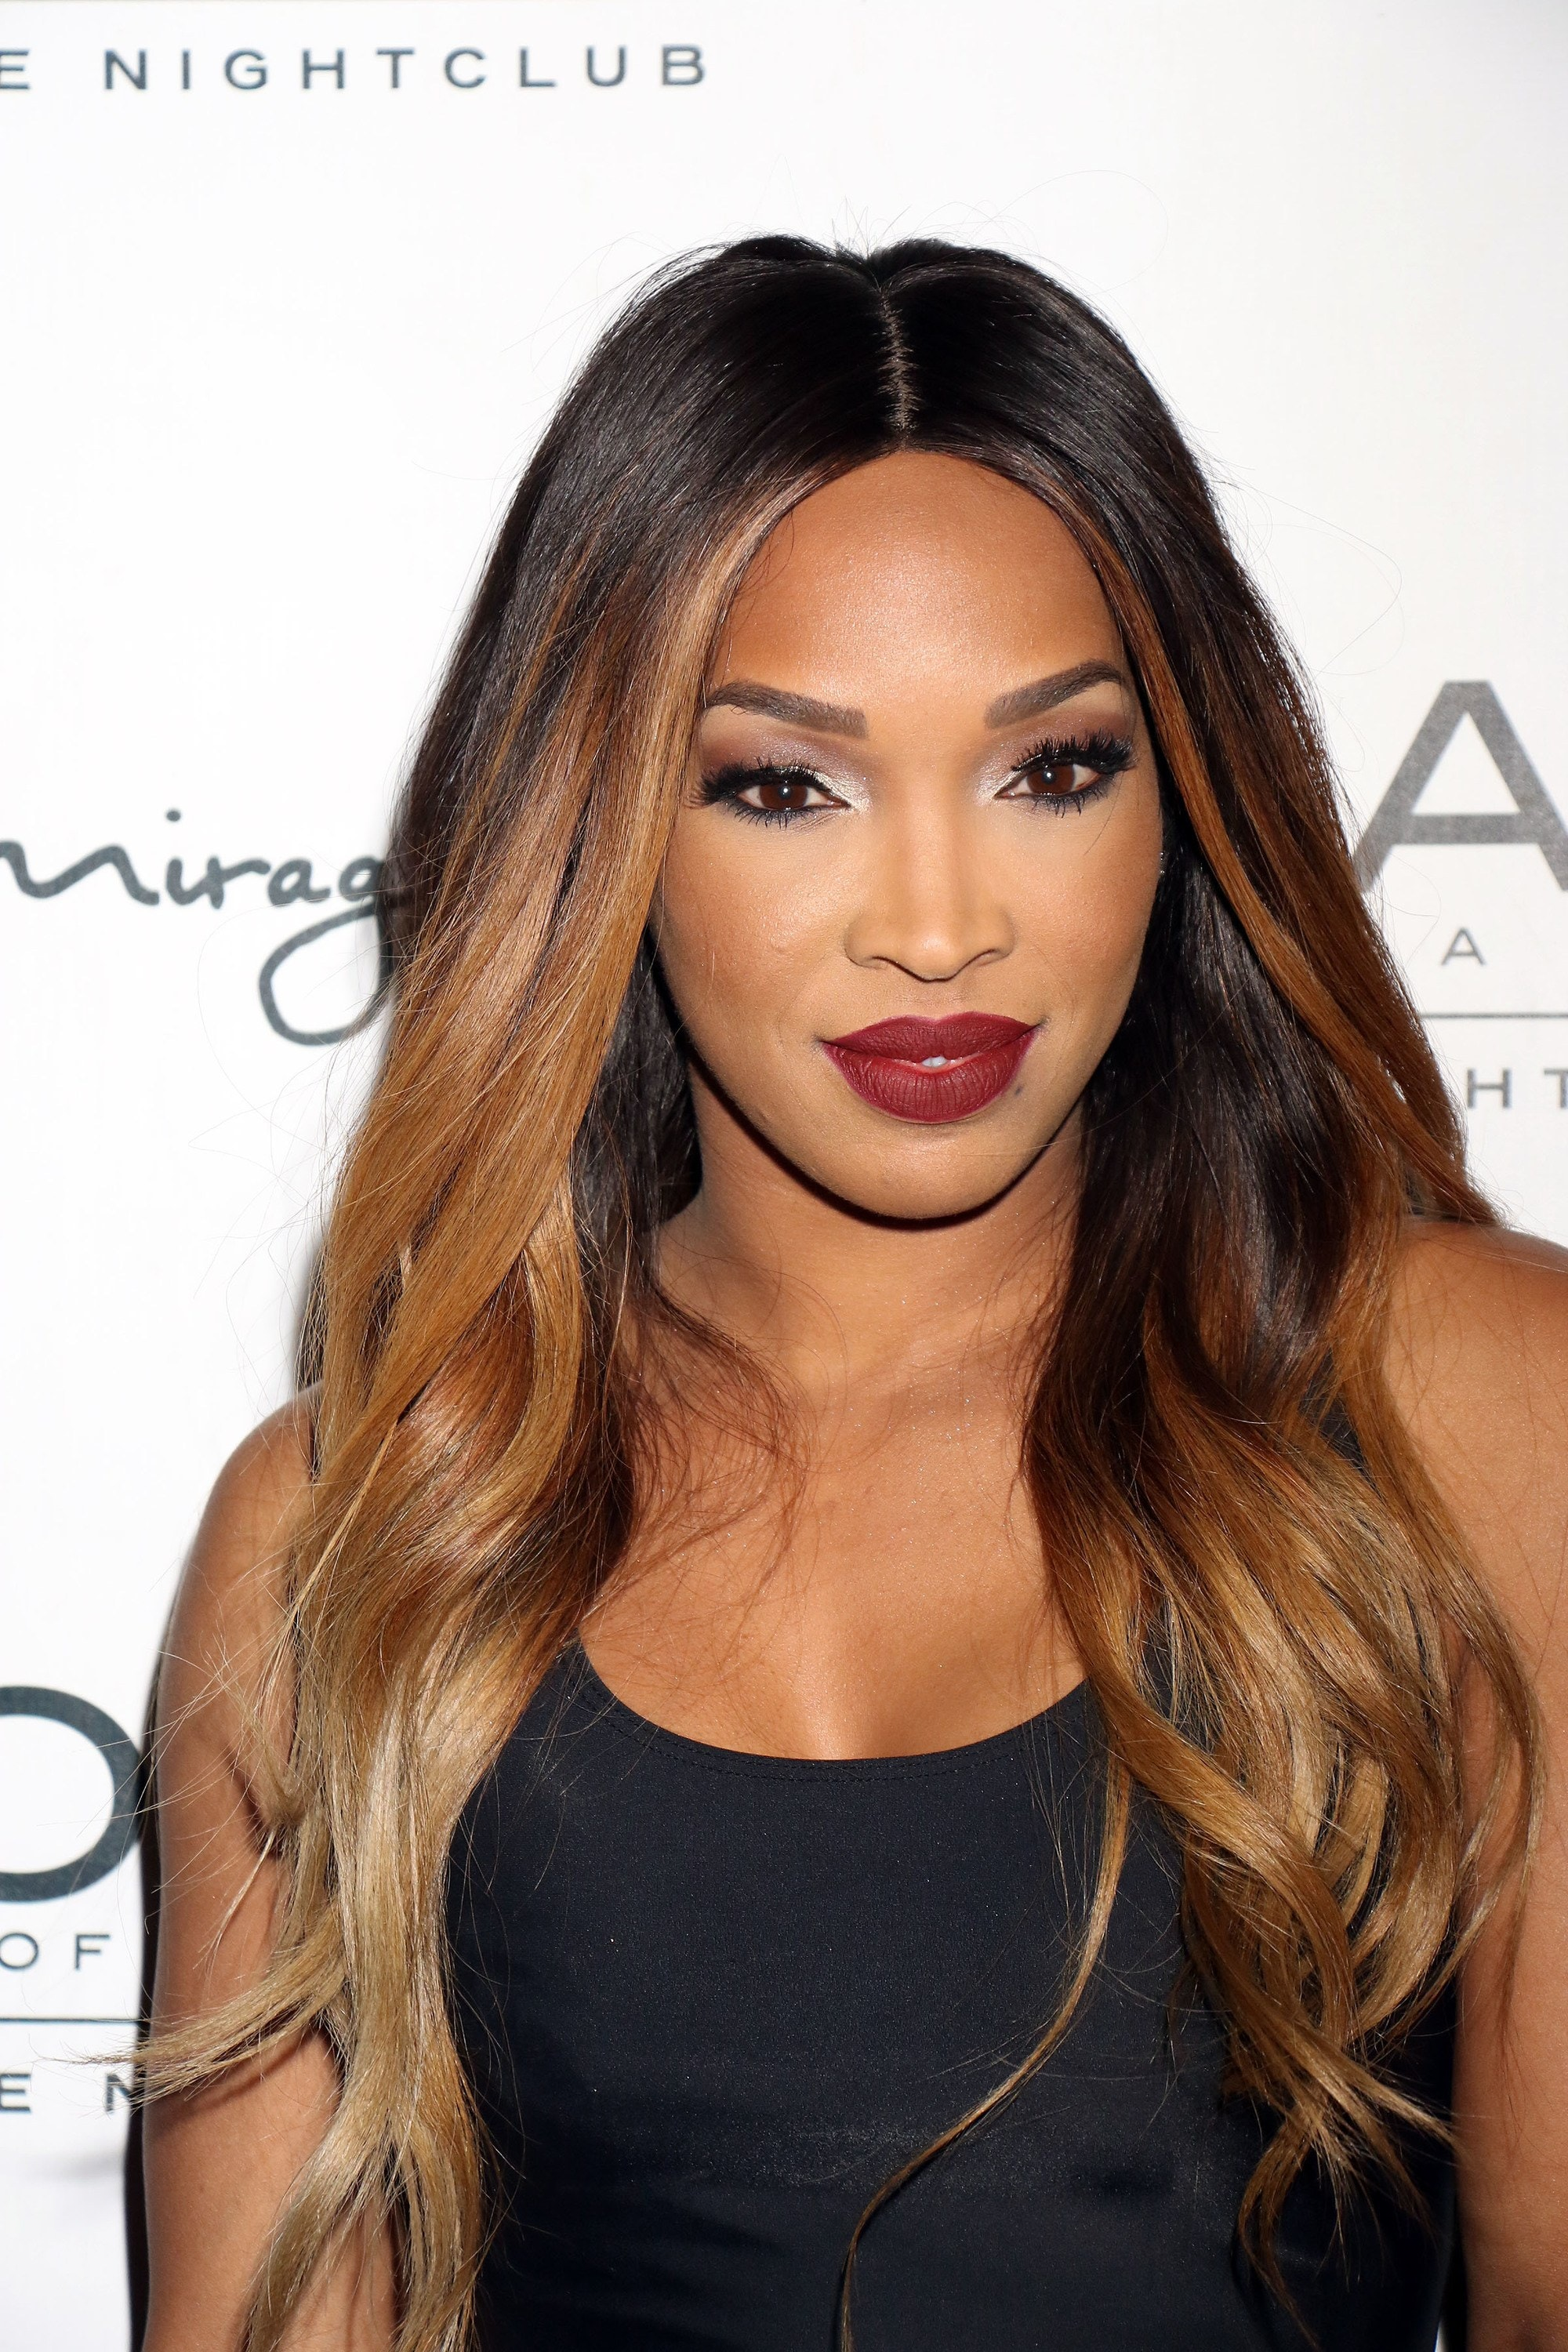 Brown hair with blonde highlights: Malika Haqq with long dark hair with caramel face-framing highlights